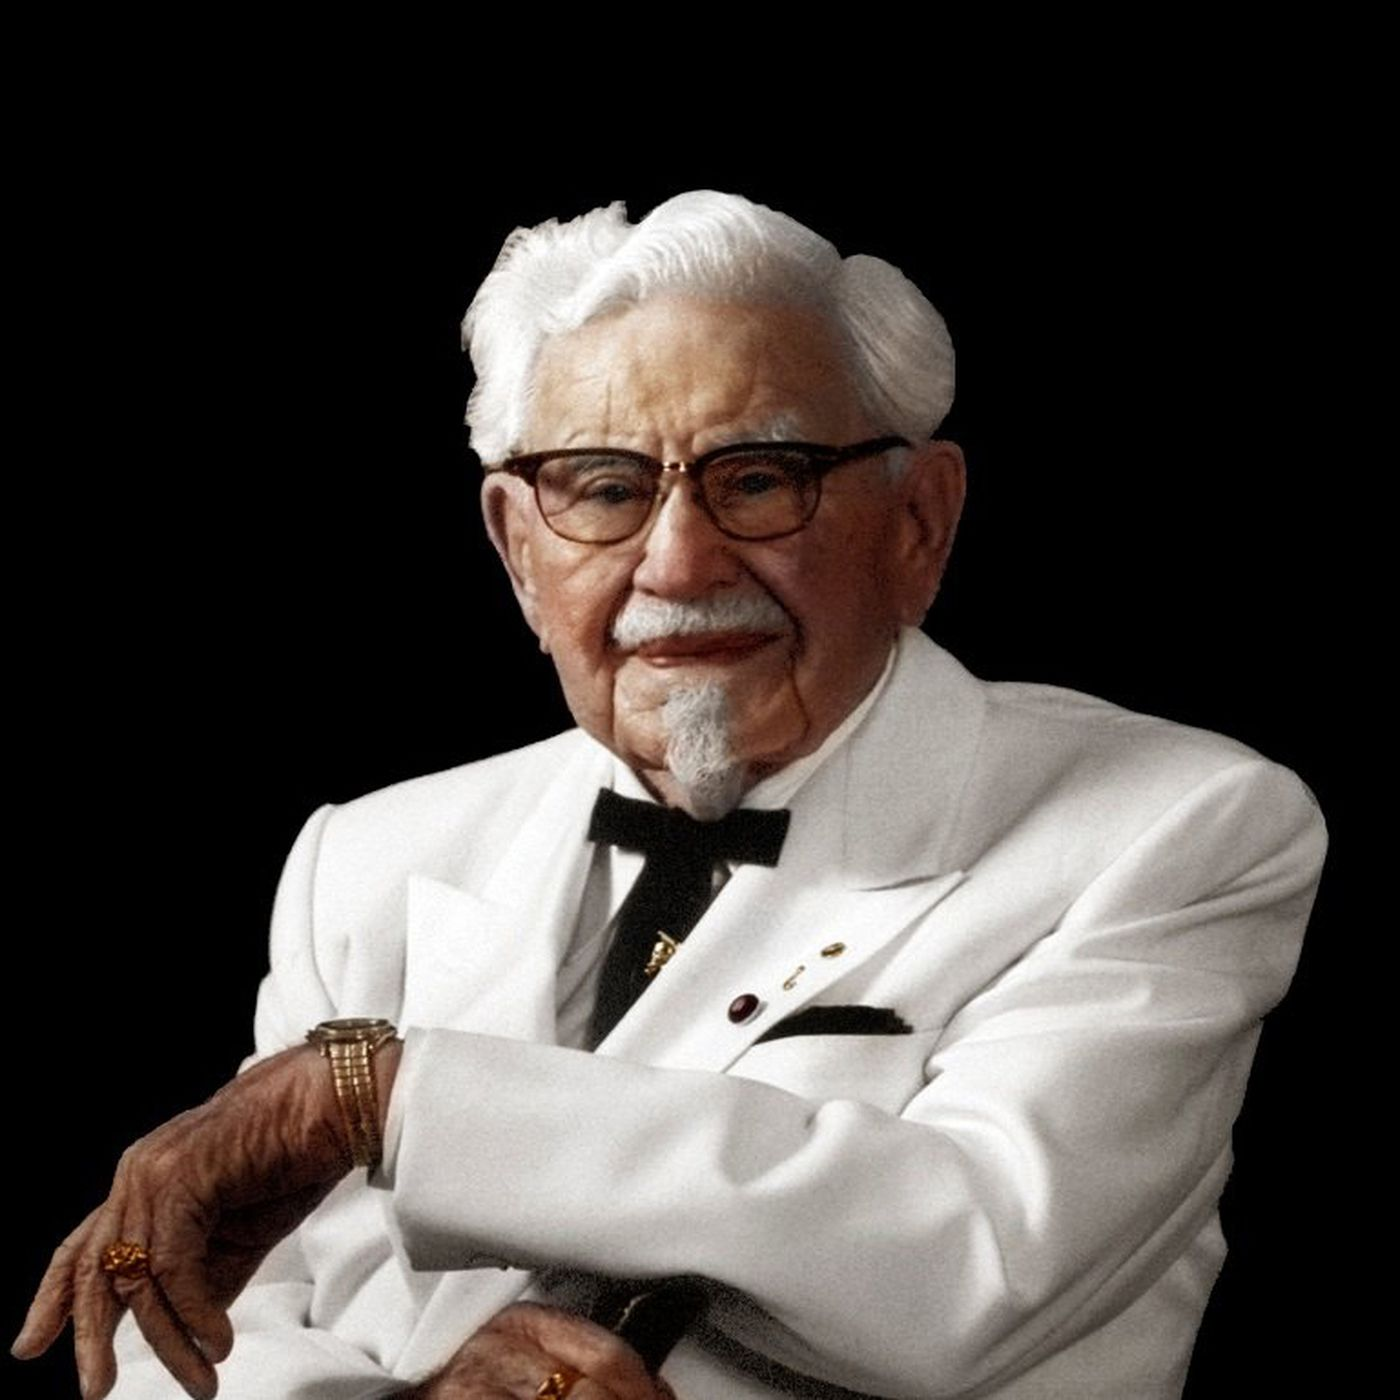 The Real Story Of Colonel Sanders Is Far Crazier Than This Bland